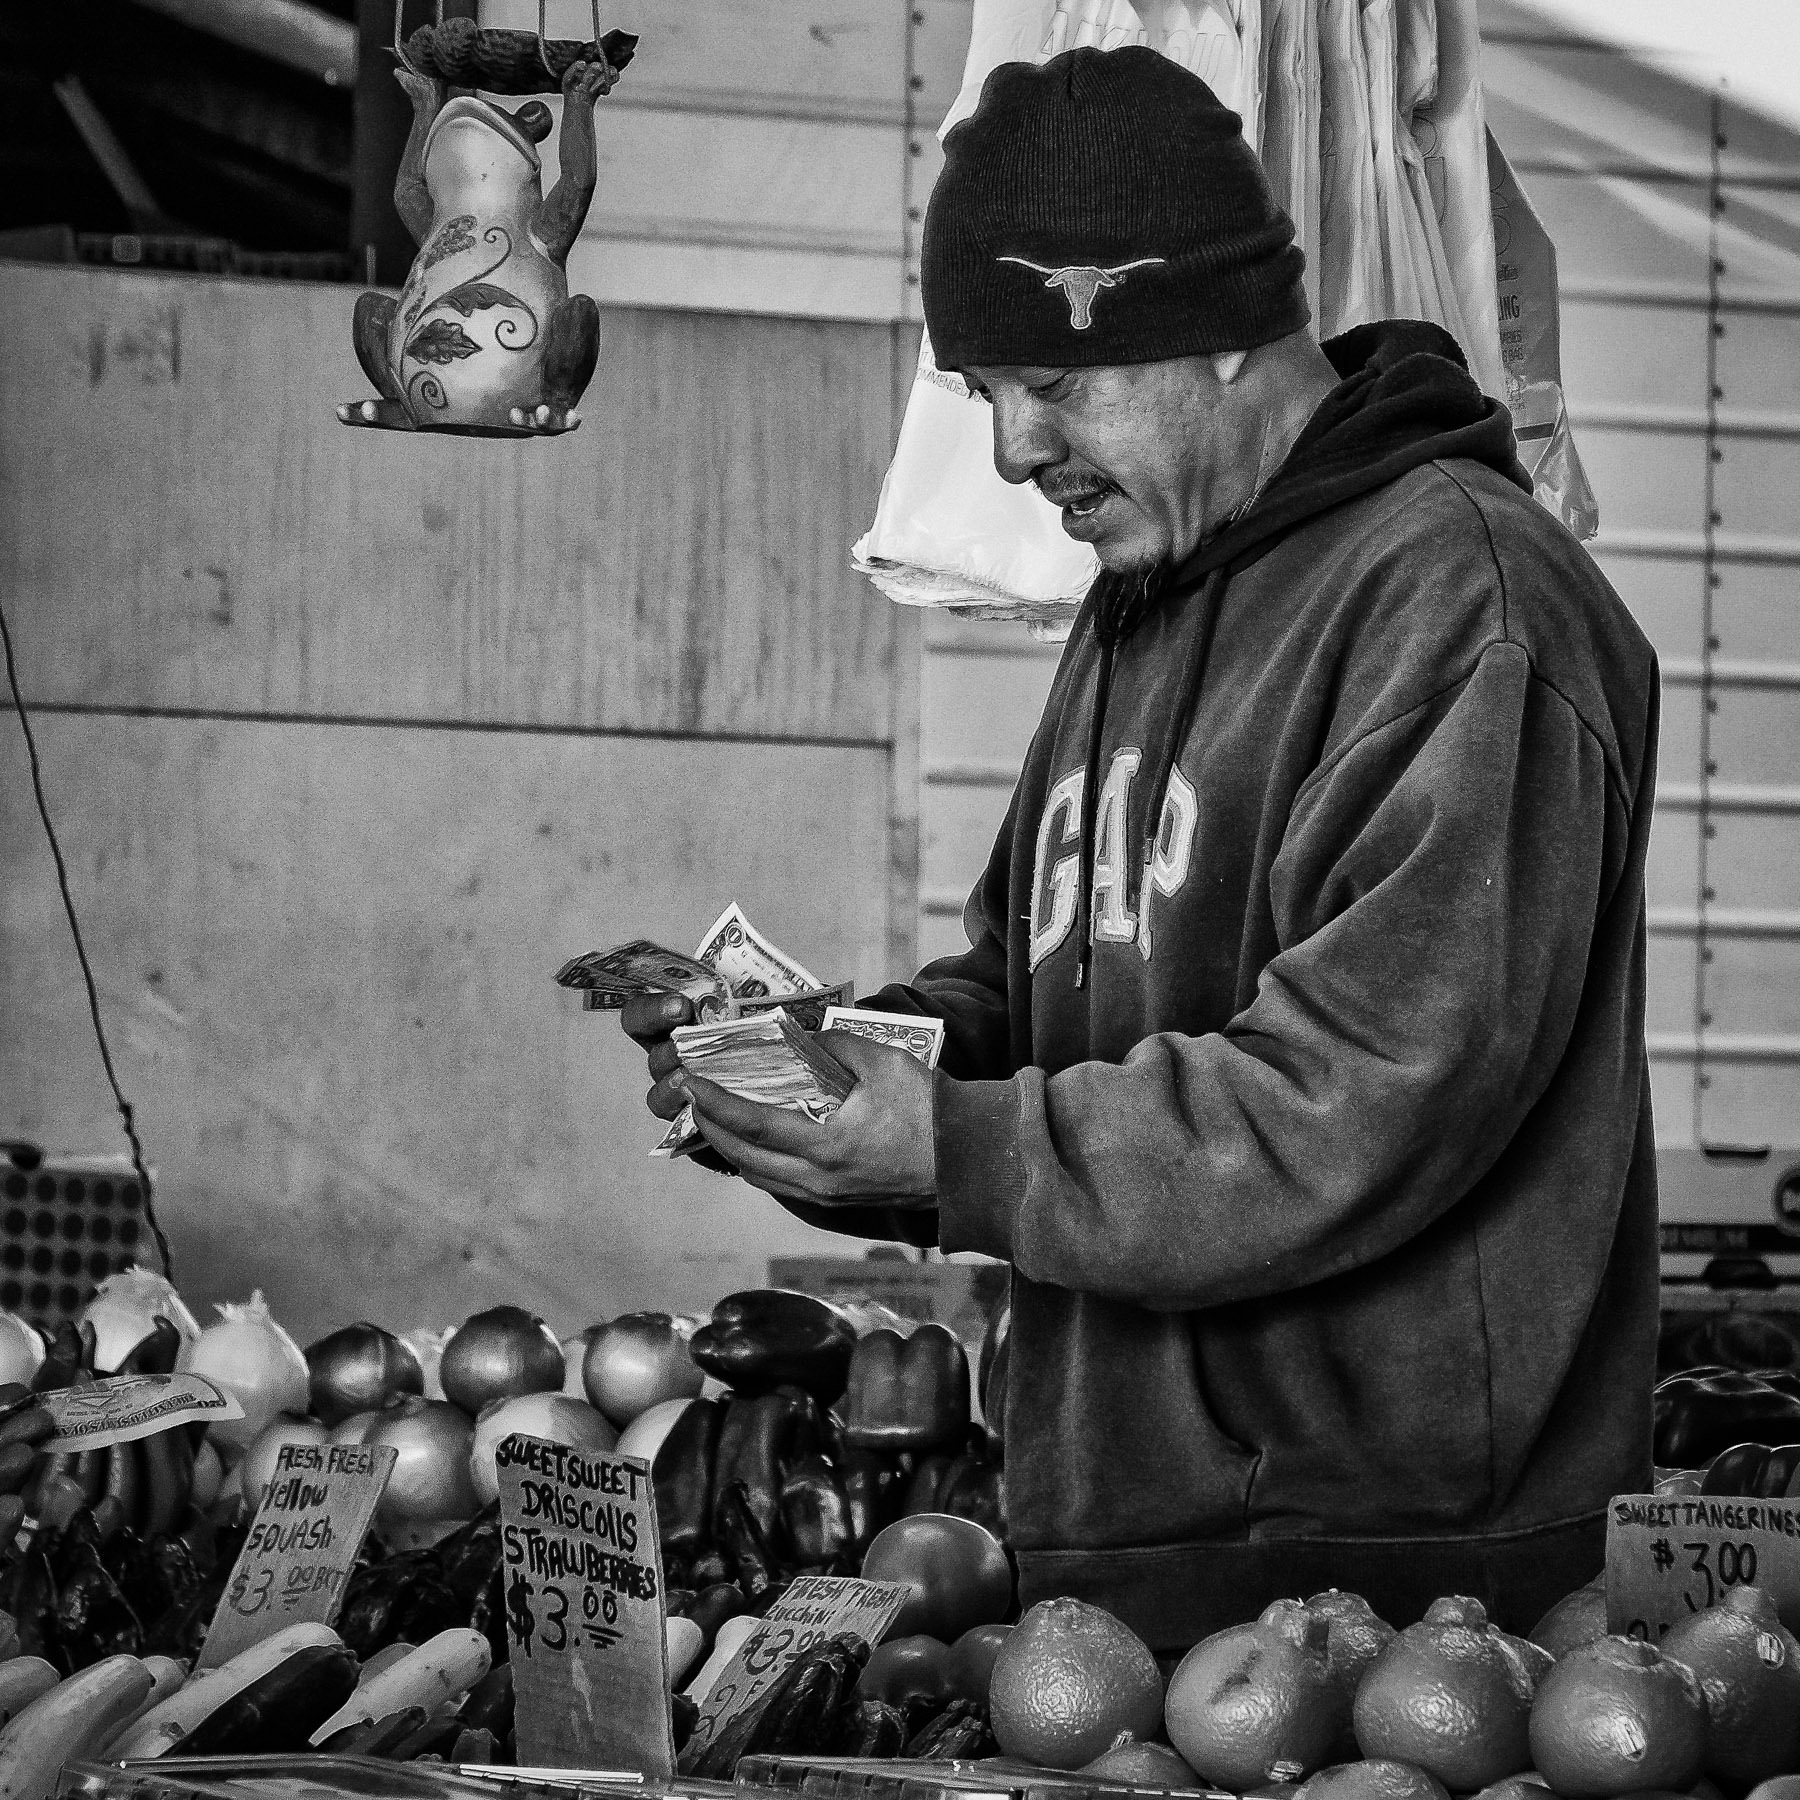 A vendor at the Dallas Farmers Market counts money during a lull in business on a cold winter morning.